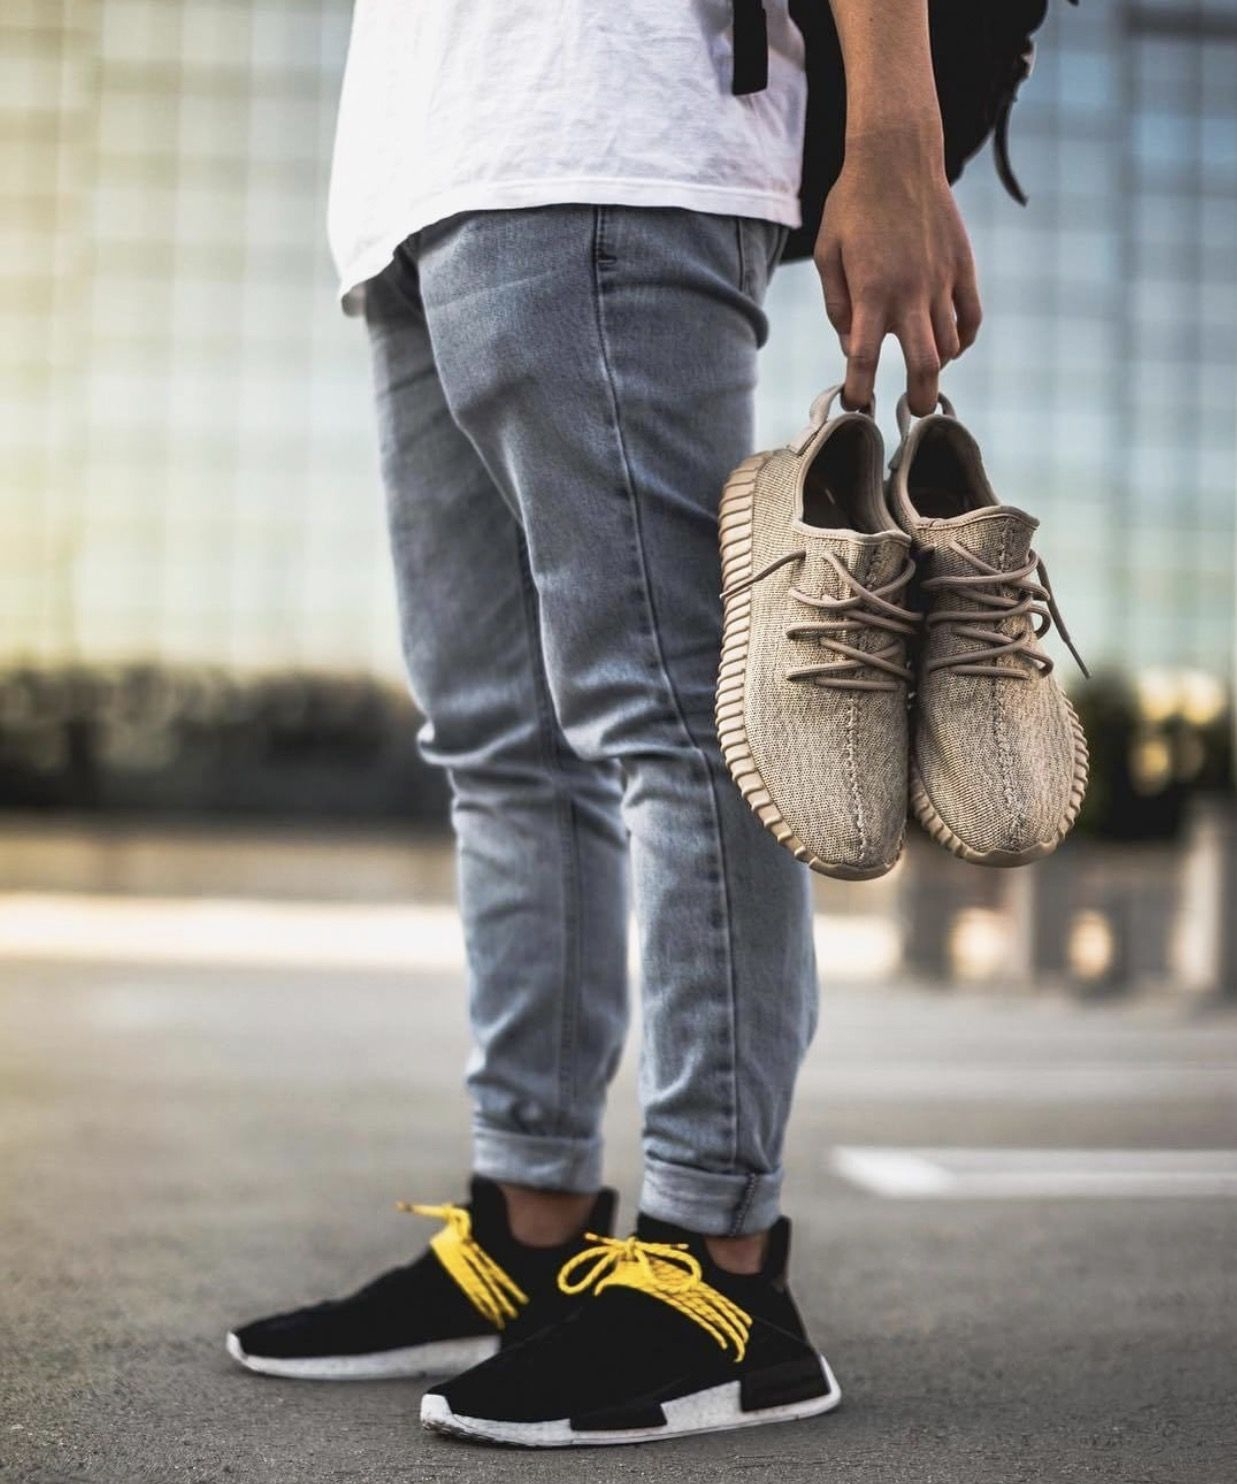 f198071473f On feet   adidas x Pharrell Williams NMD Human Race Blk. In hand  adidas  Yeezy Boost 350 V1